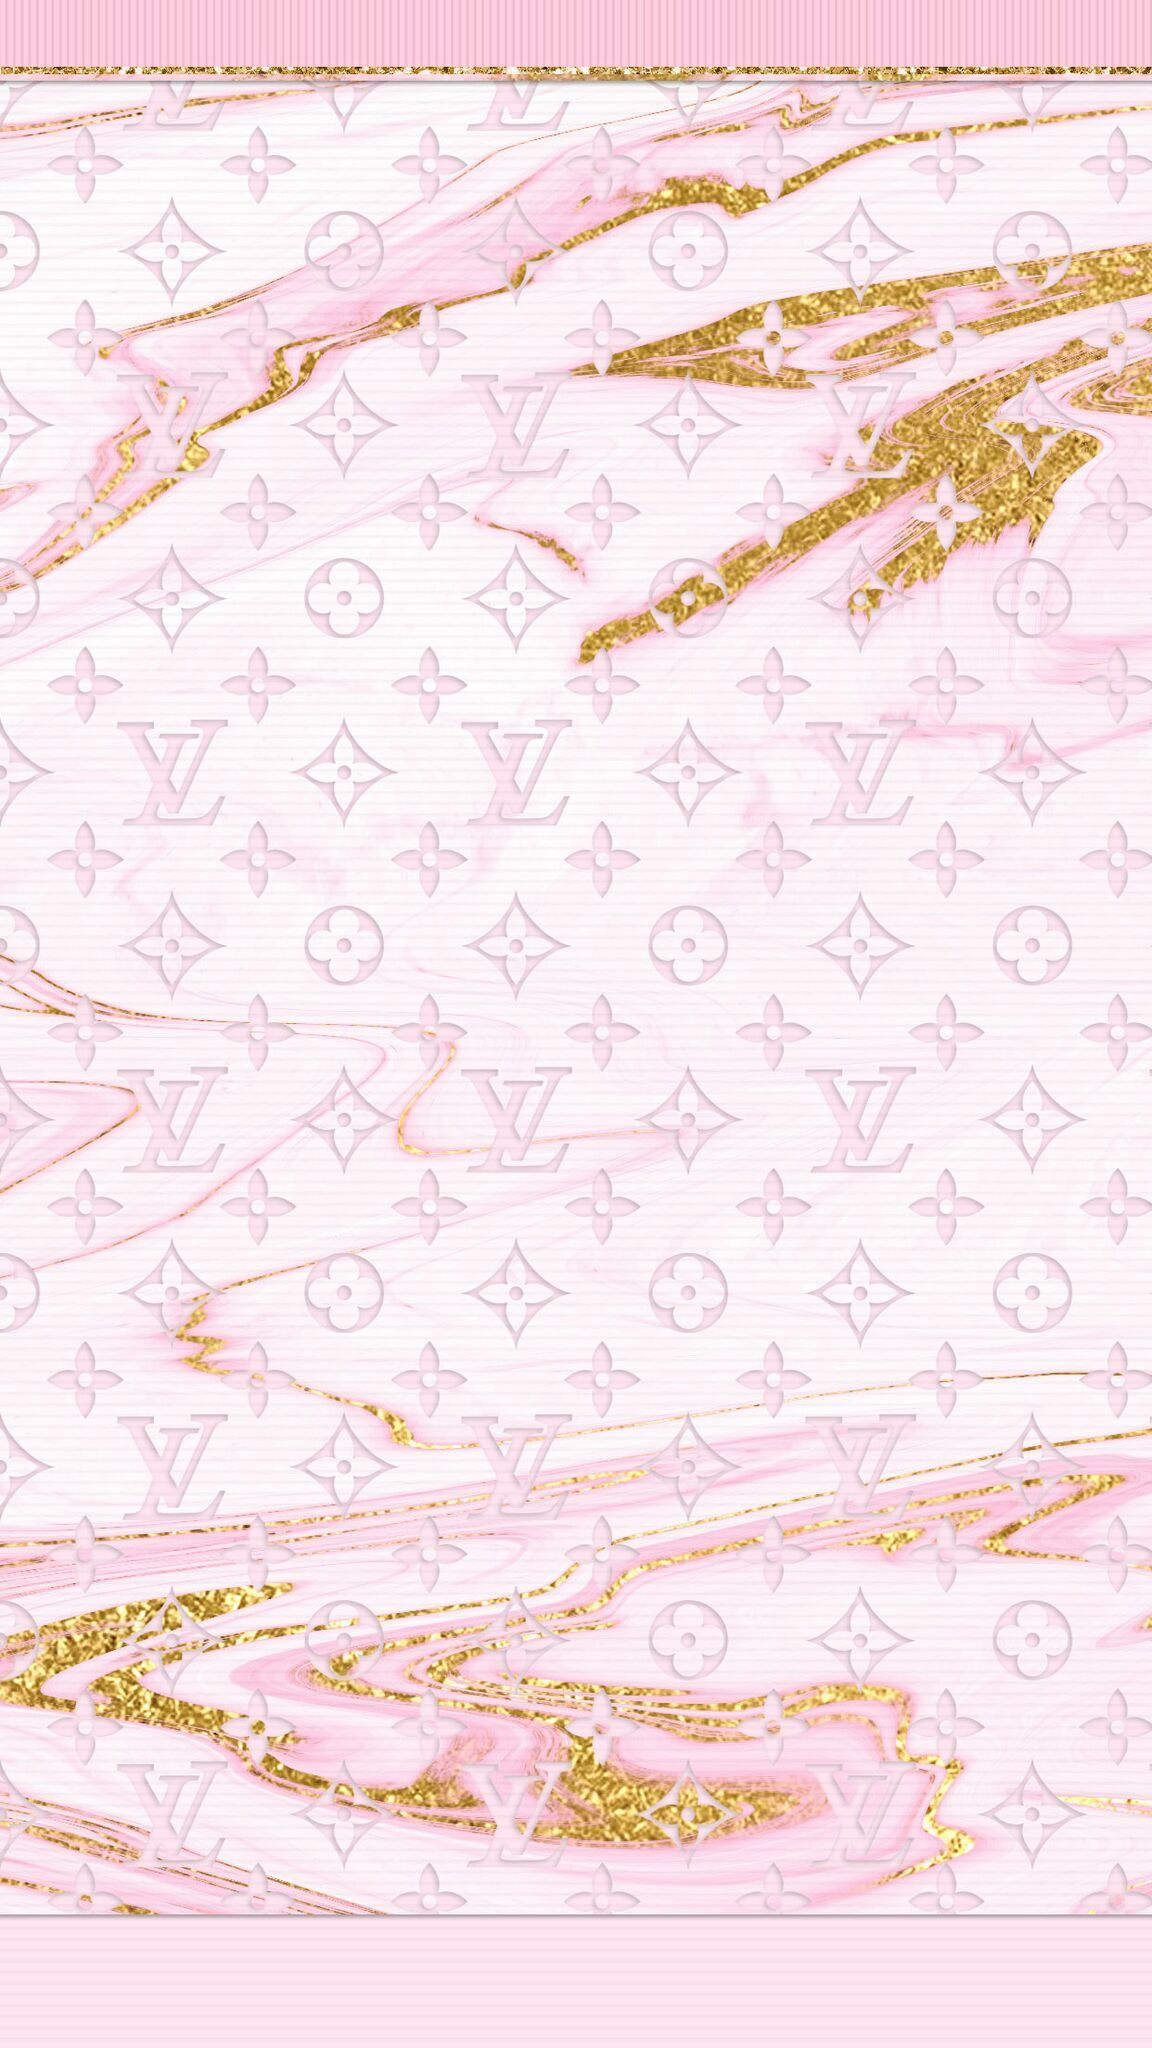 Shared With Dropbox Pink Wallpaper Iphone Louis Vuitton Iphone Wallpaper Aesthetic Iphone Wallpaper